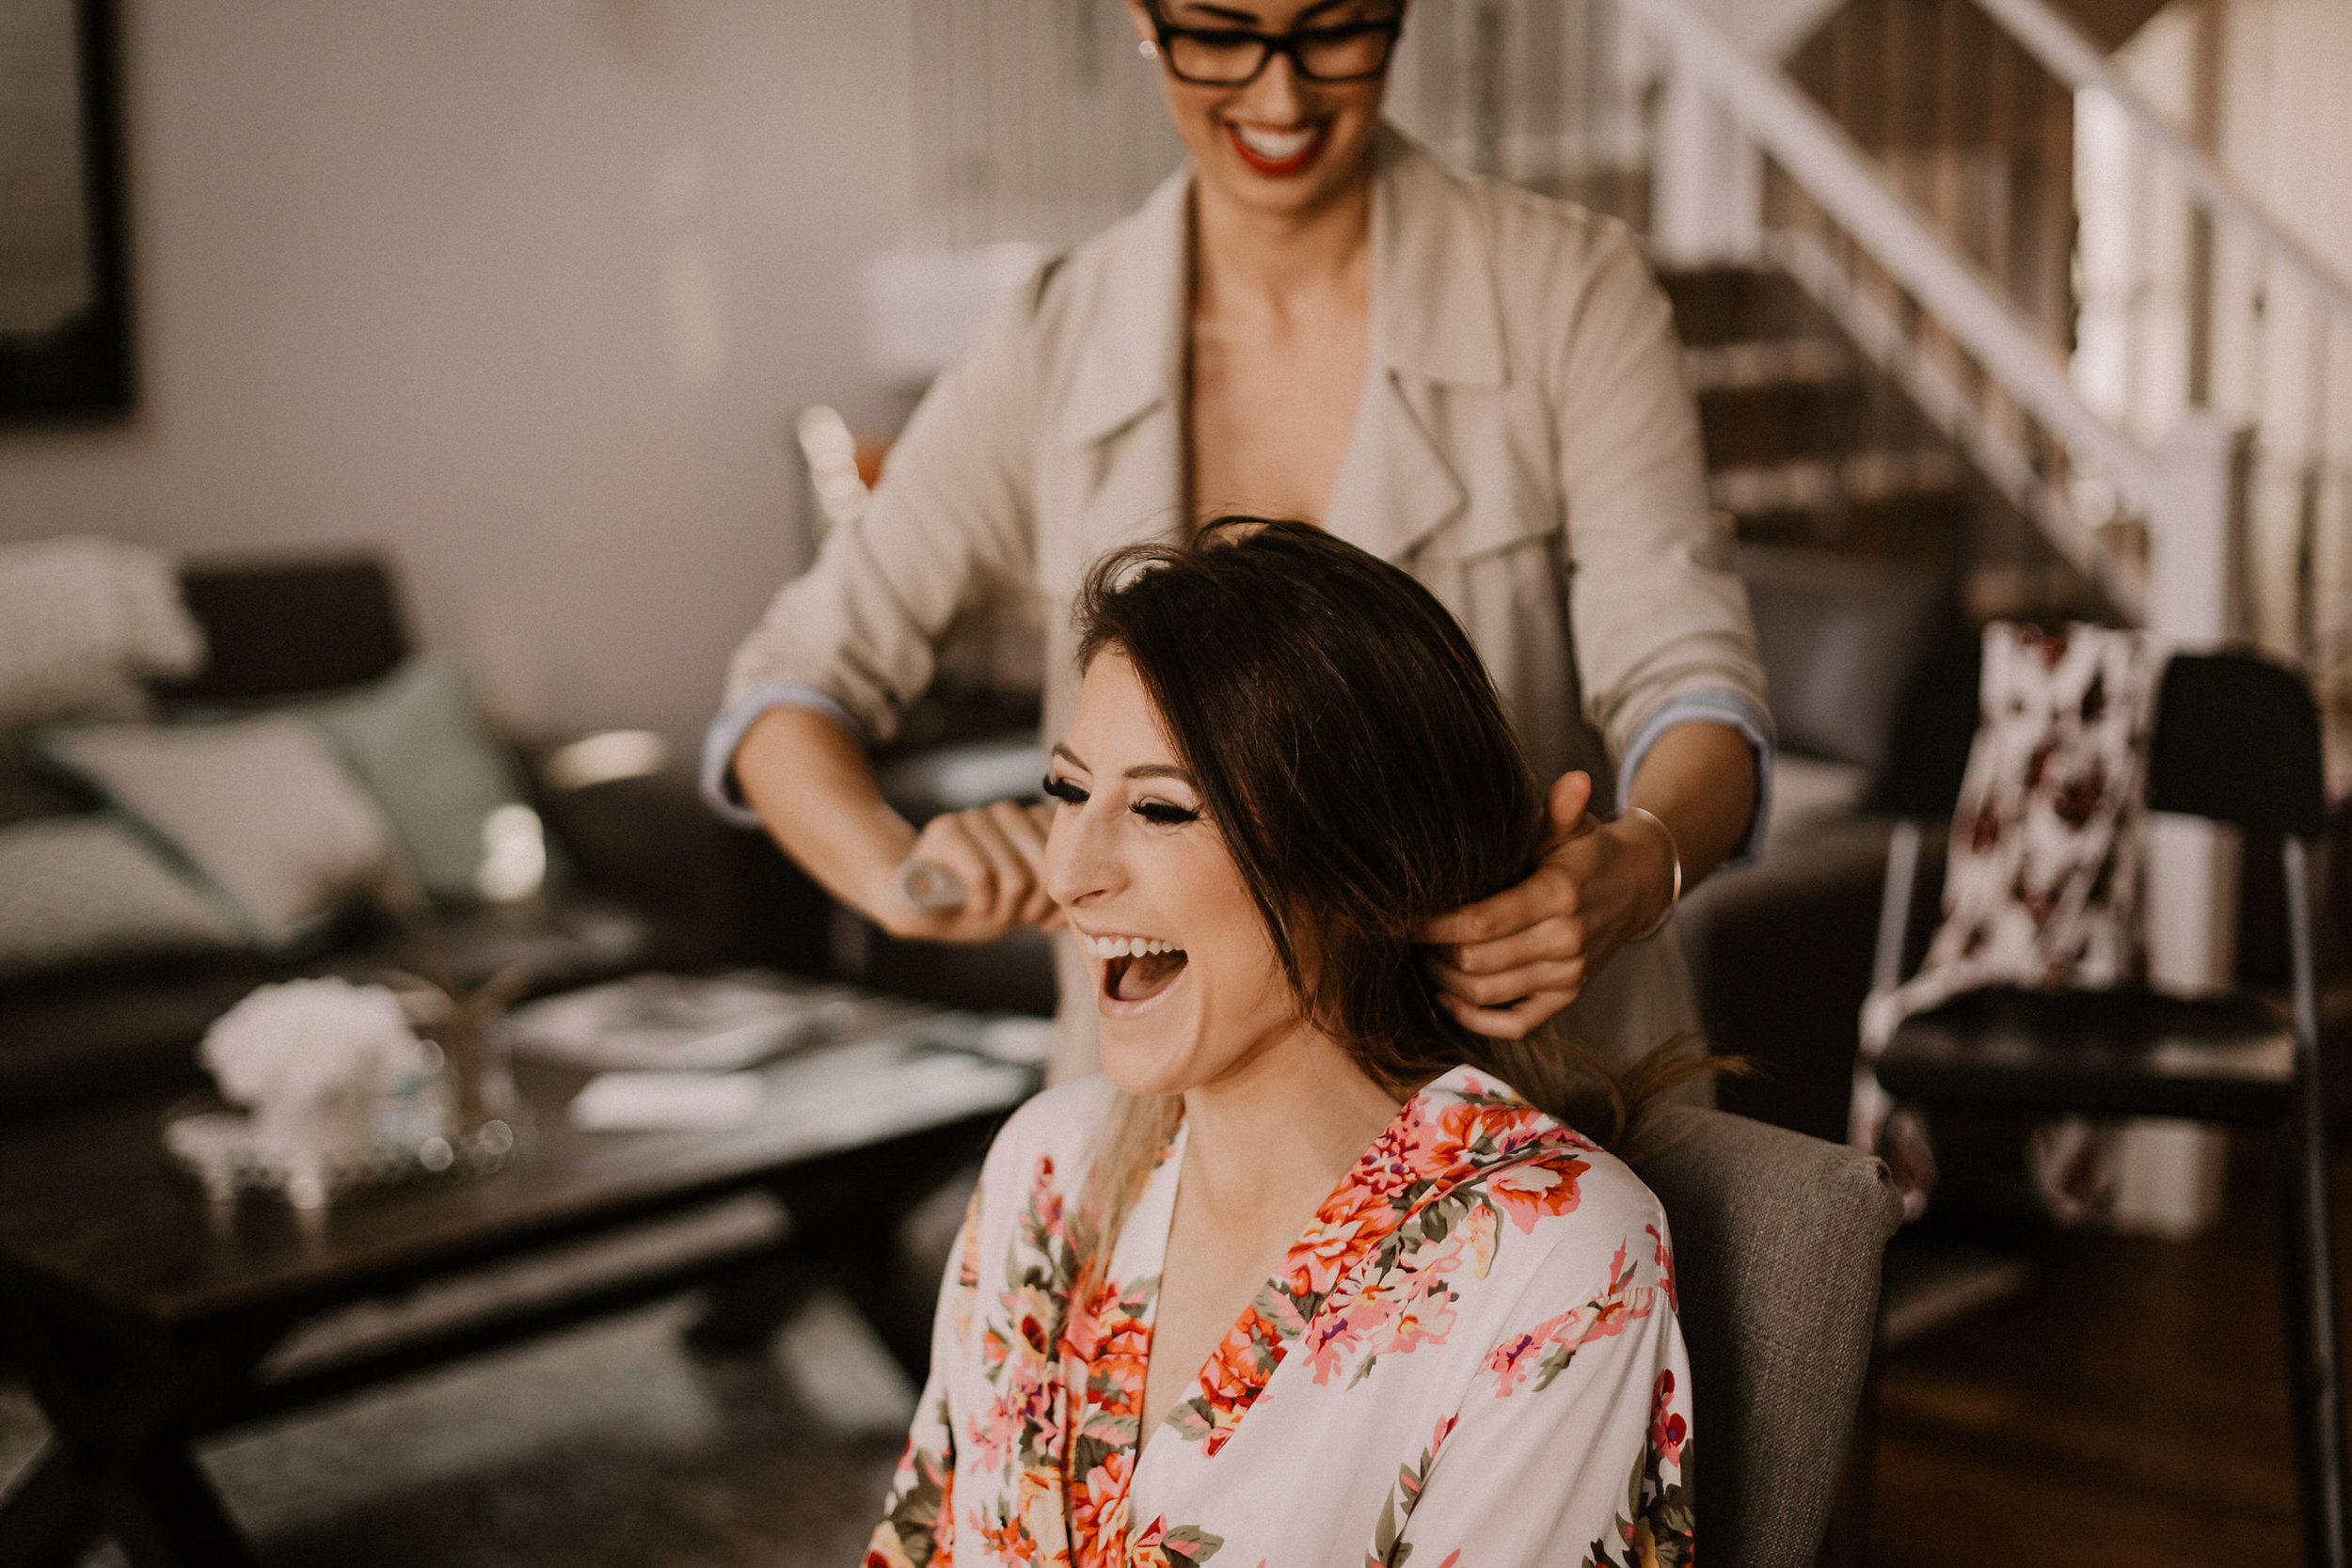 Spend a year becoming a professional Makeup Artist -